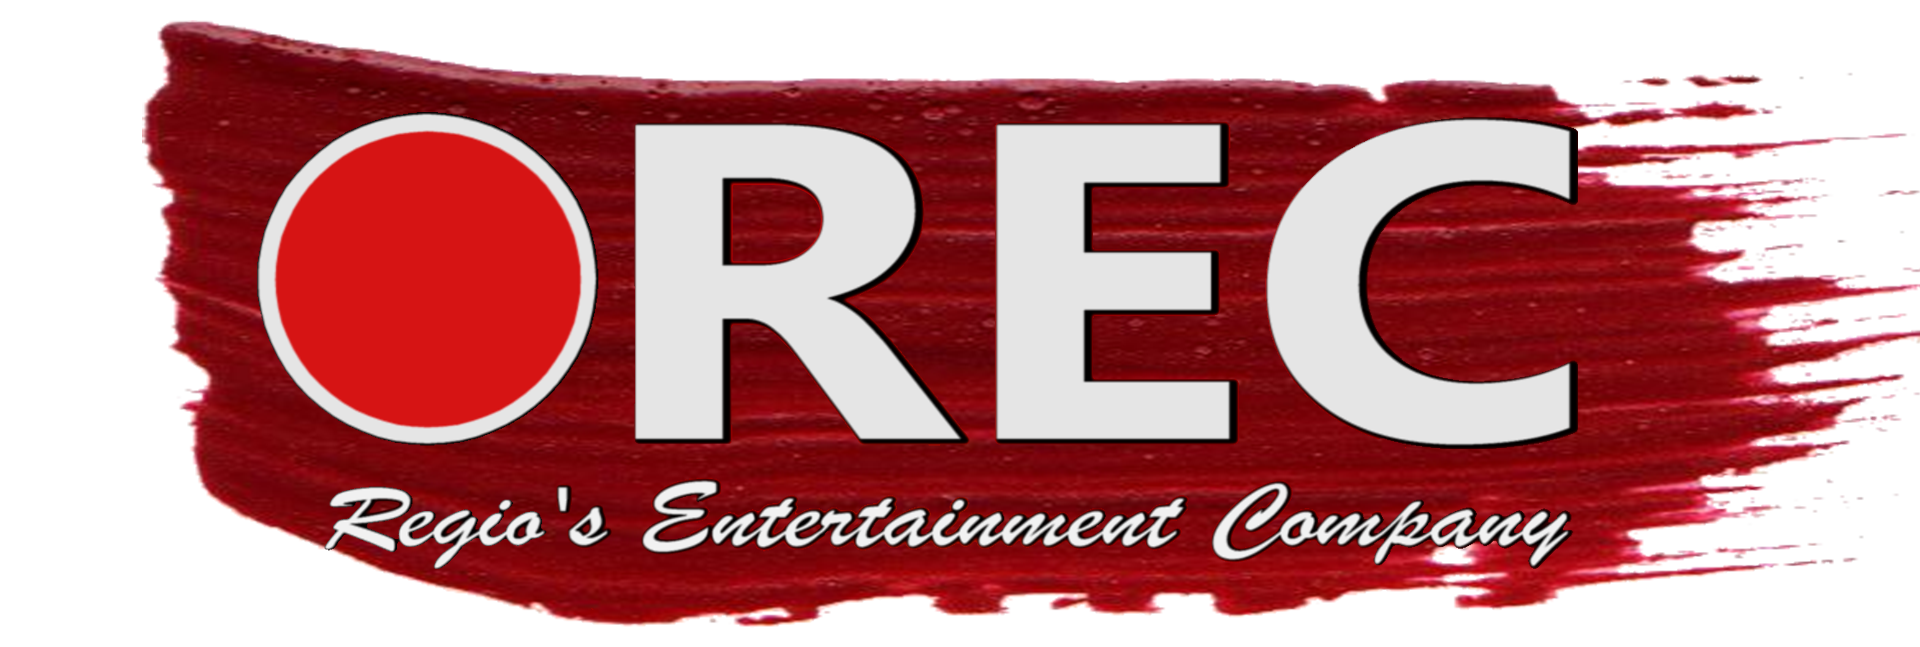 Regio's Entertainment Company